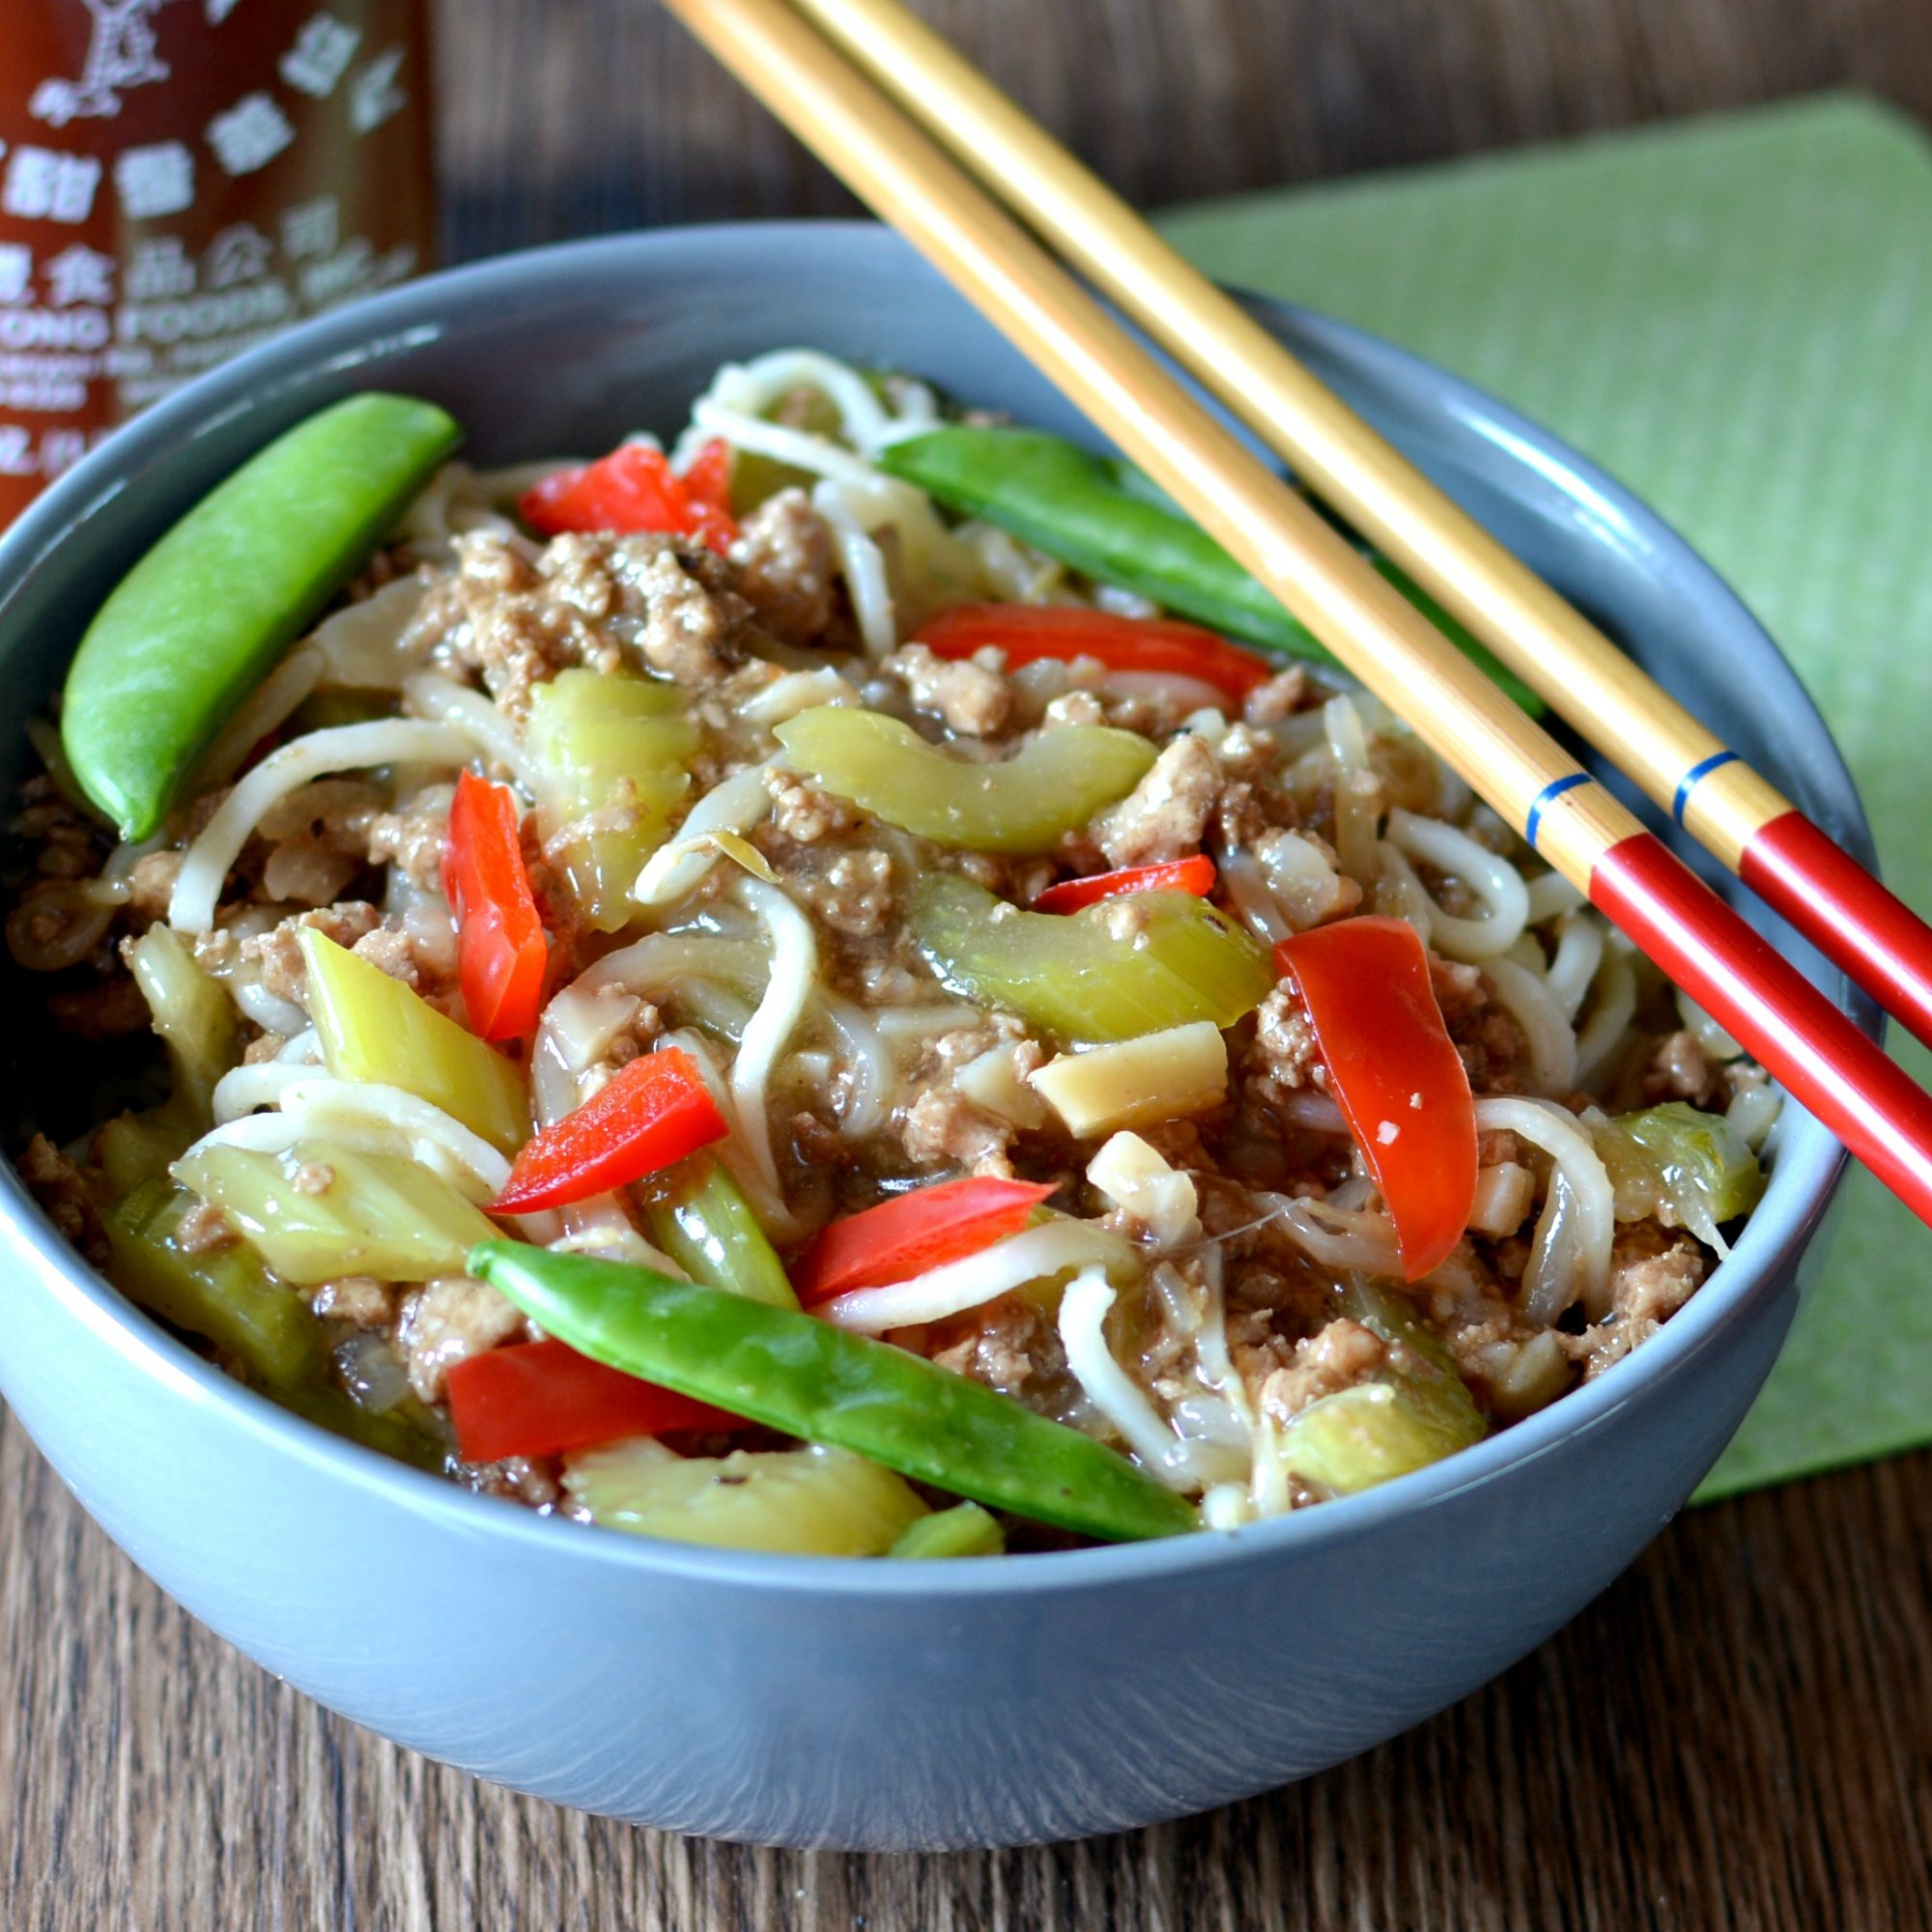 Easy Ground Turkey Lo Mein in a blue bowl with chopsticks